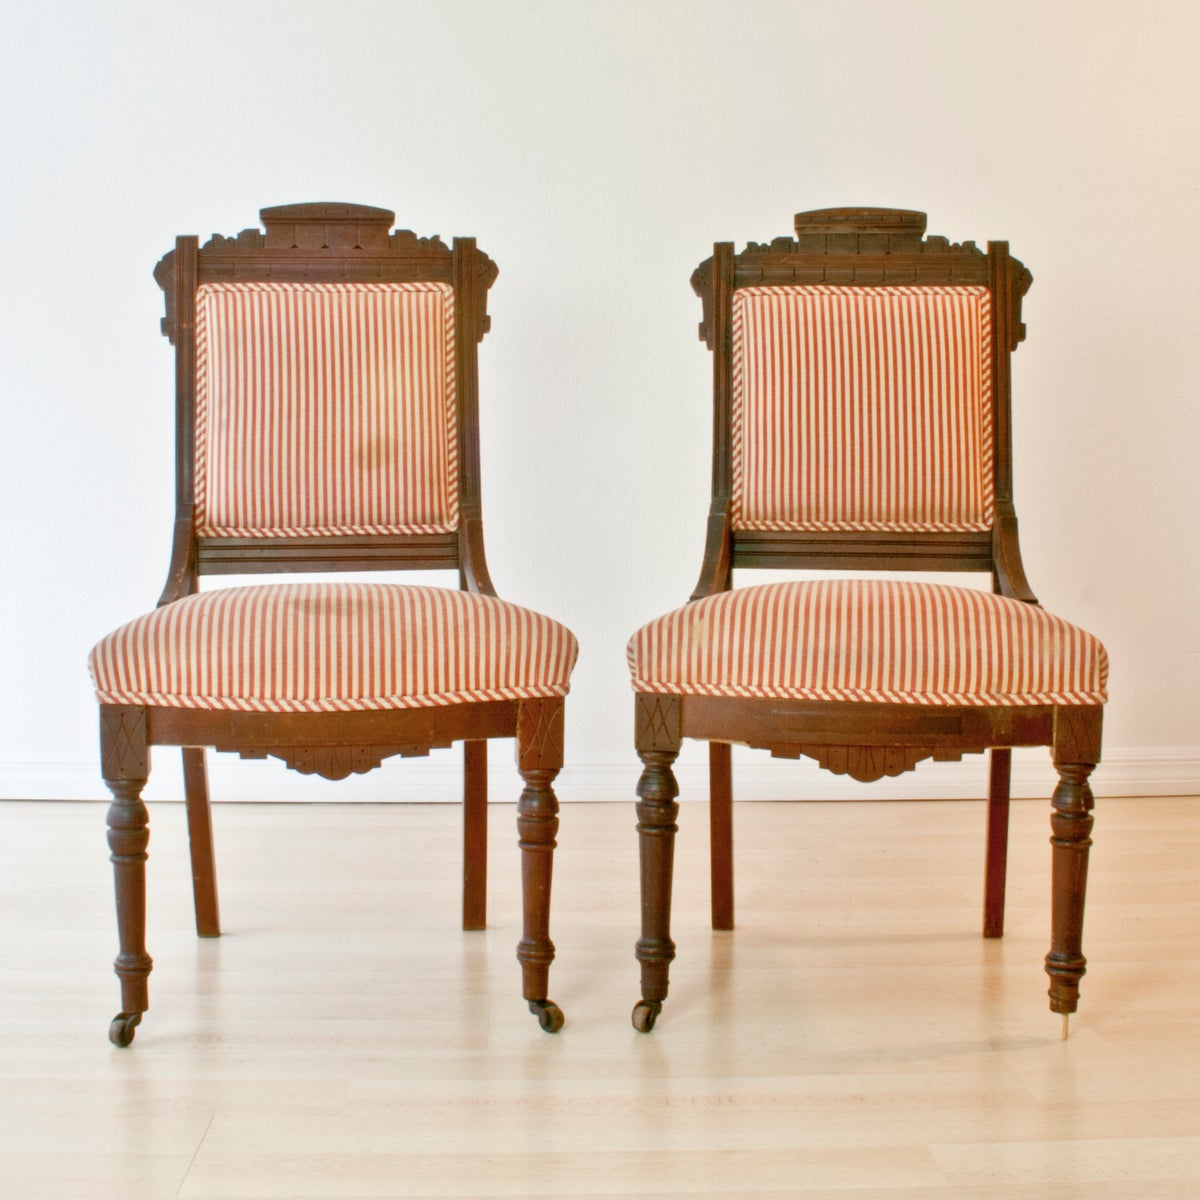 Antique chairs dublin 100 small red desk chair furniture for Where can i rent furniture for cheap